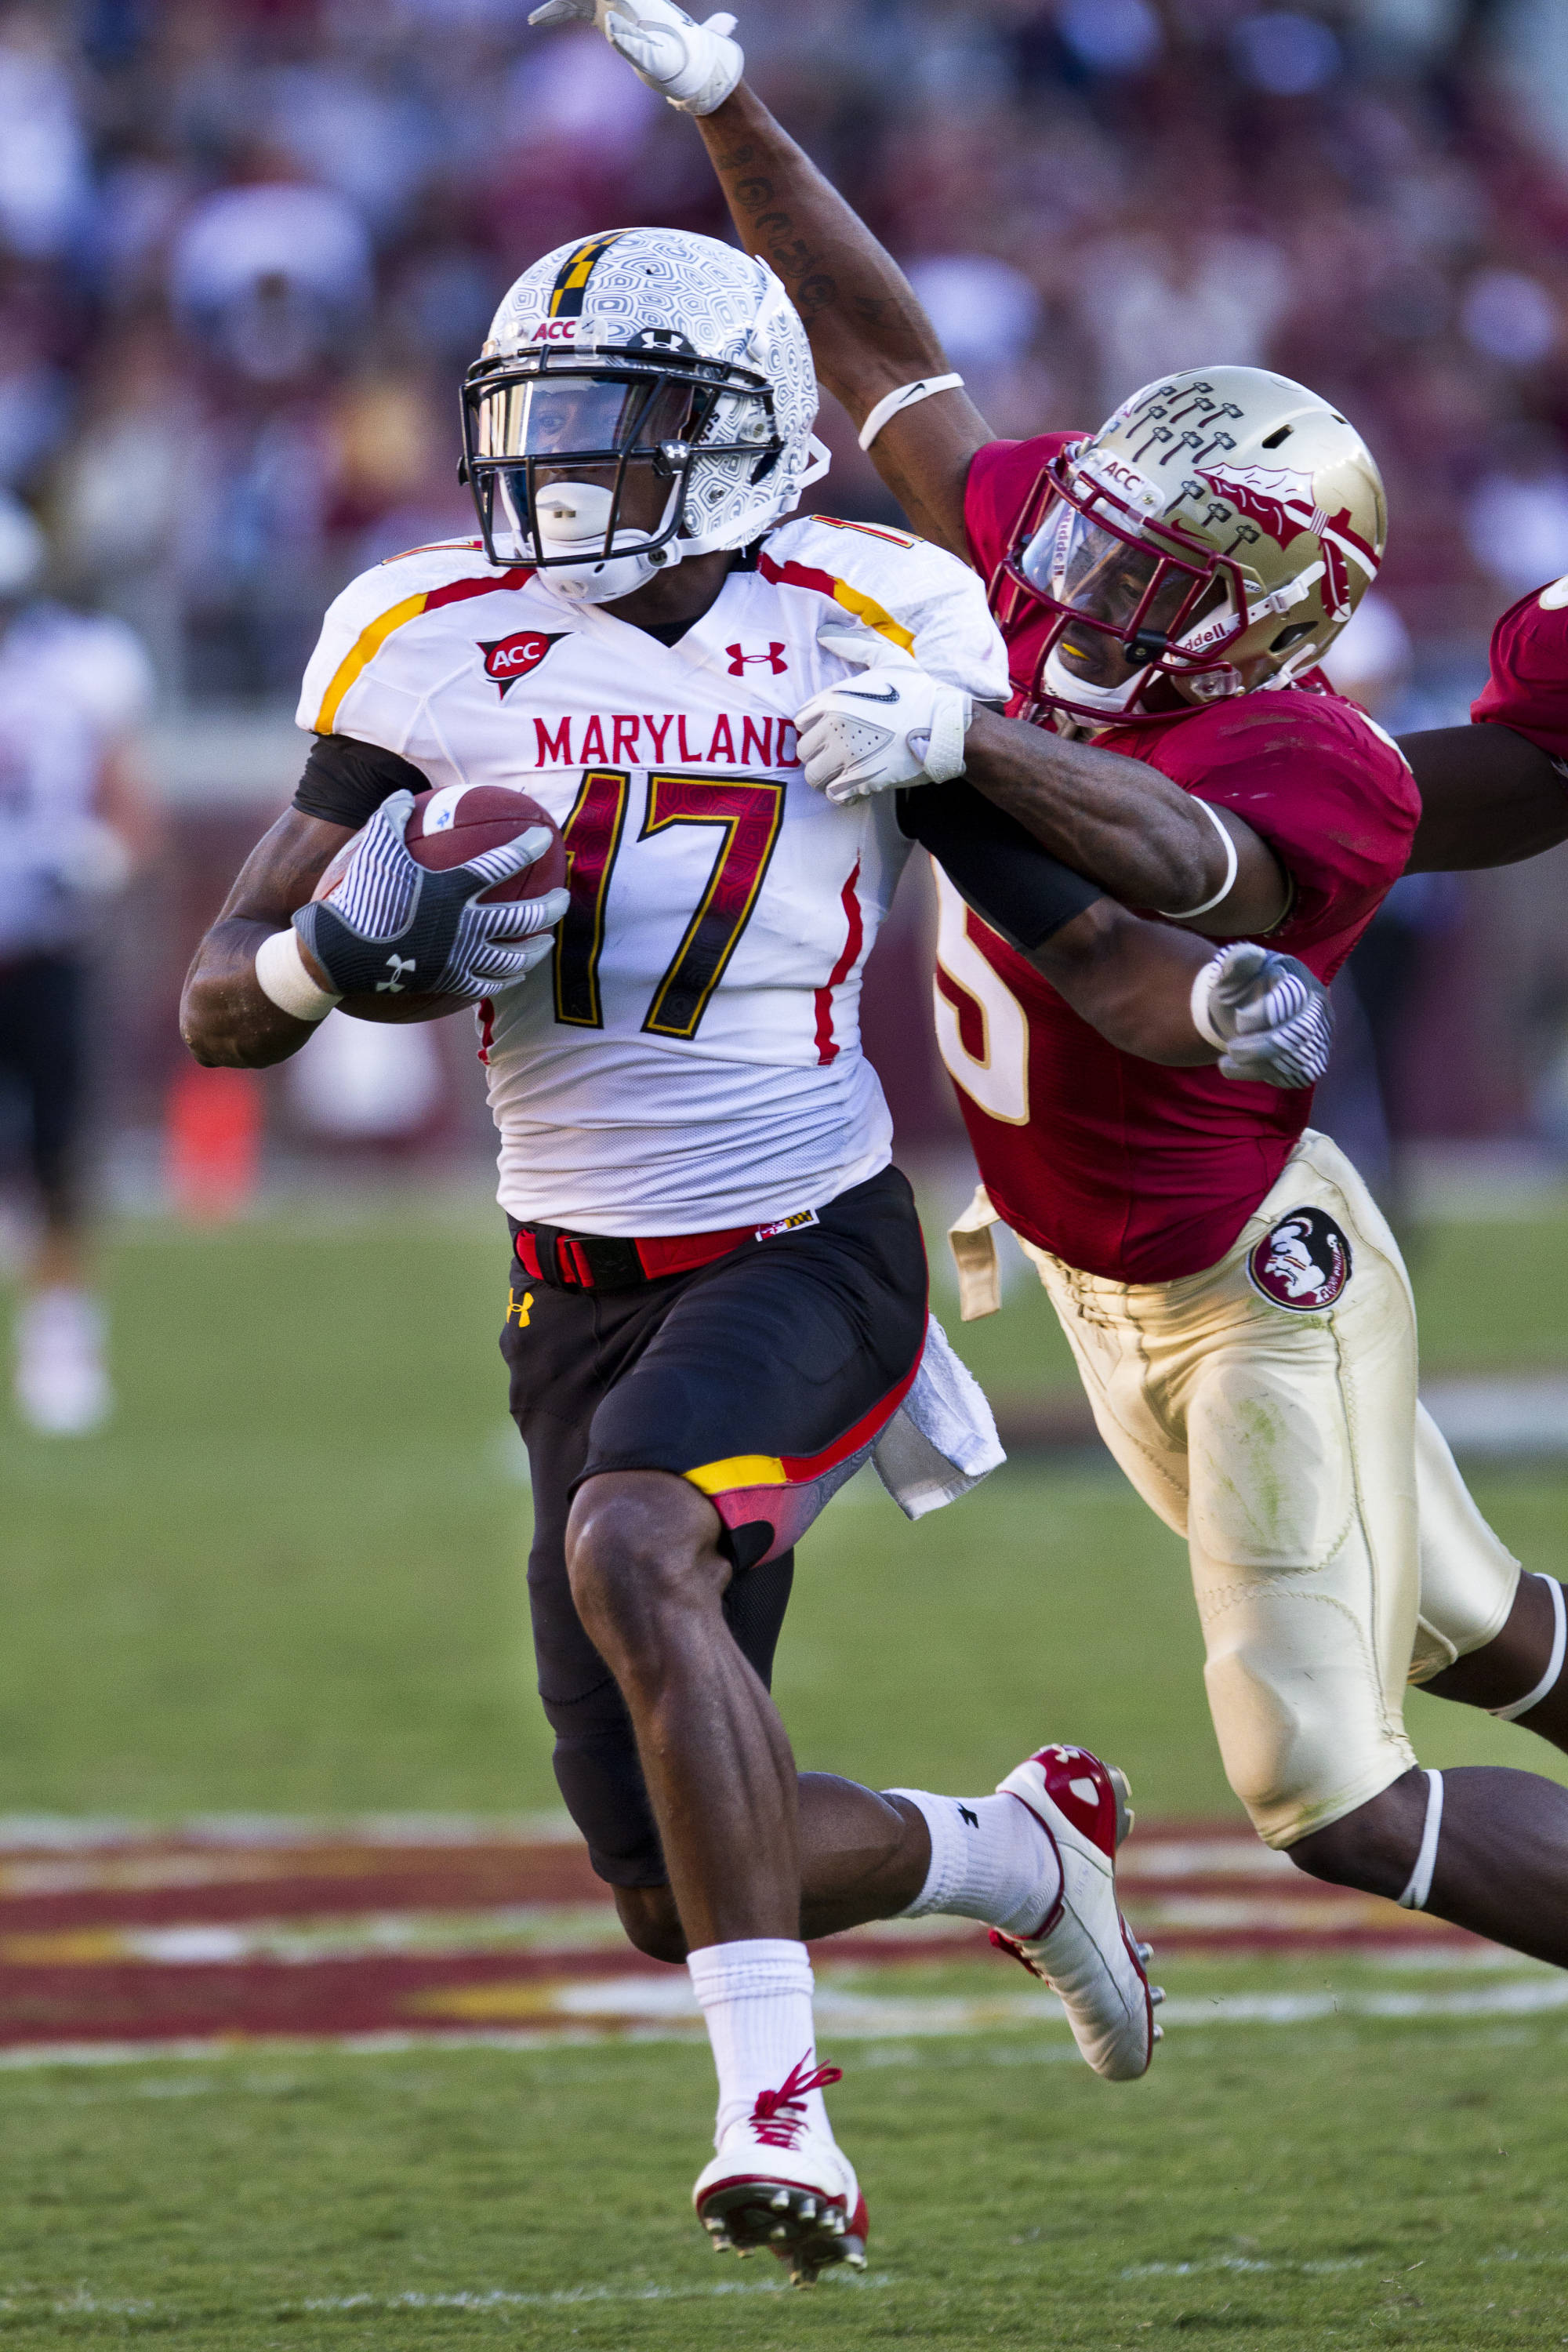 Greg Reid (5) stops a Maryland ball carrier on a breakaway run during the football game against Maryland in Tallahassee, Florida on October 22, 2011.